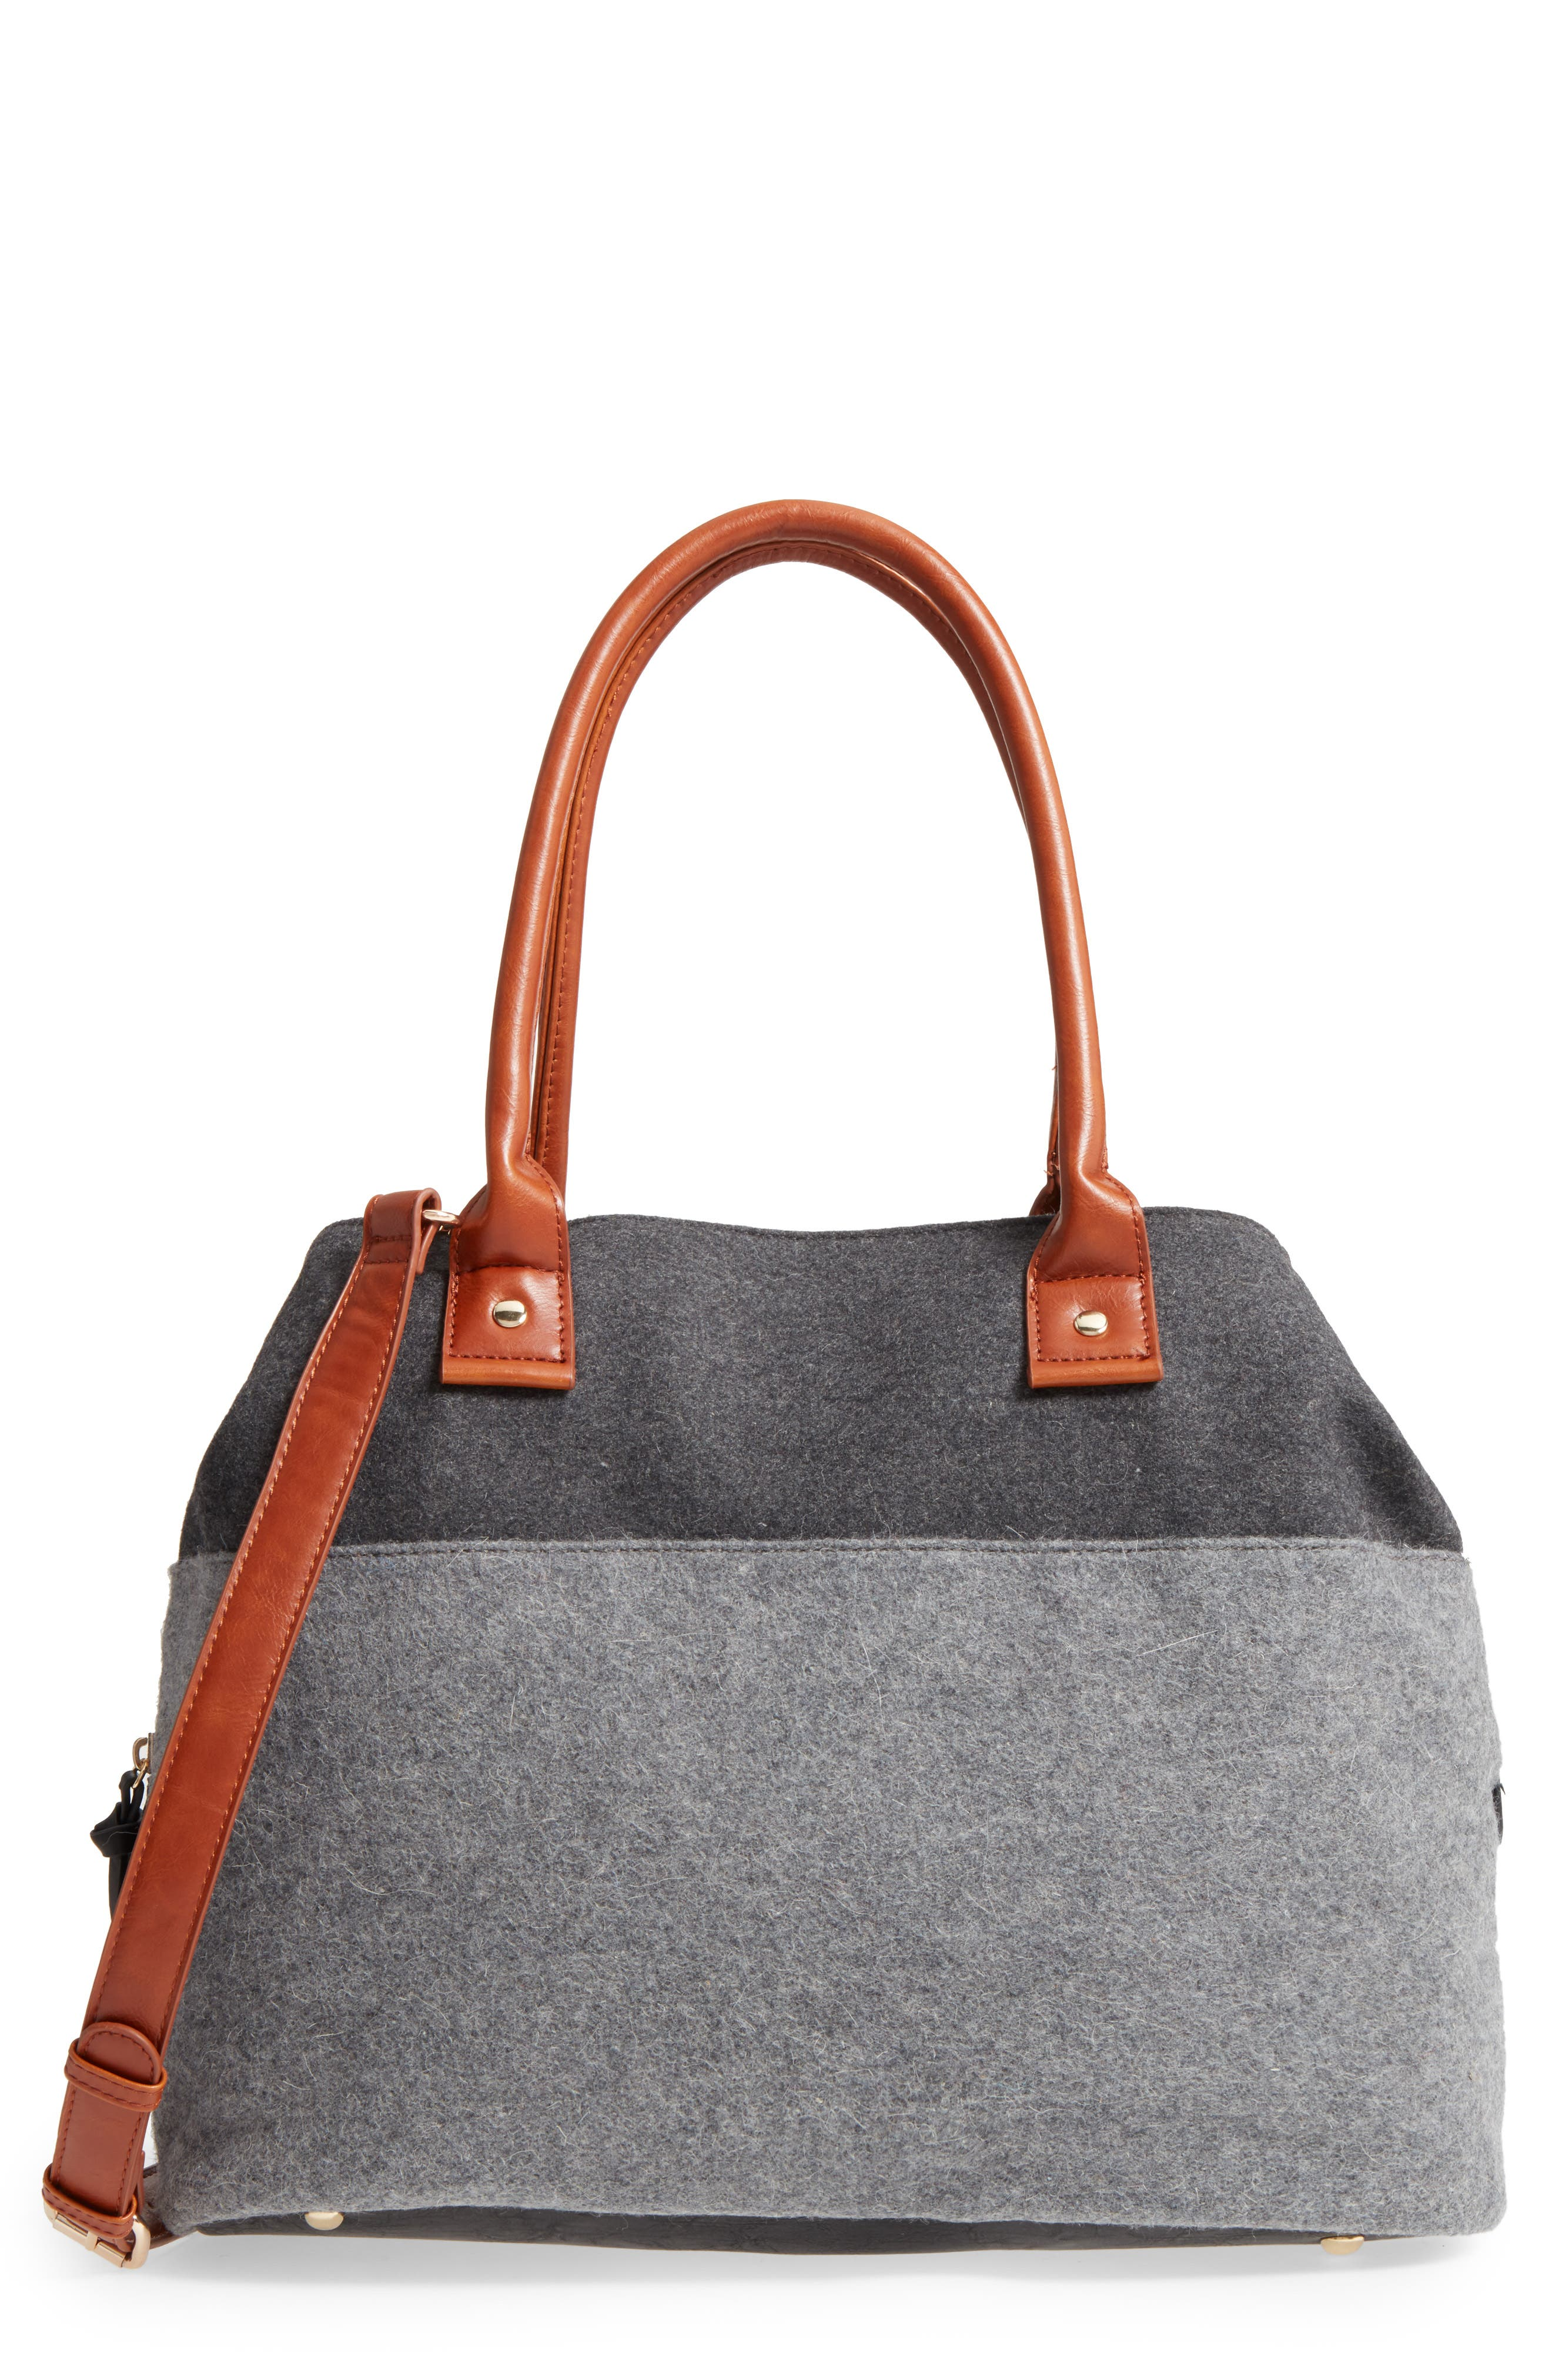 Alternate Image 1 Selected - Sole Society Chasity Duffel Bag